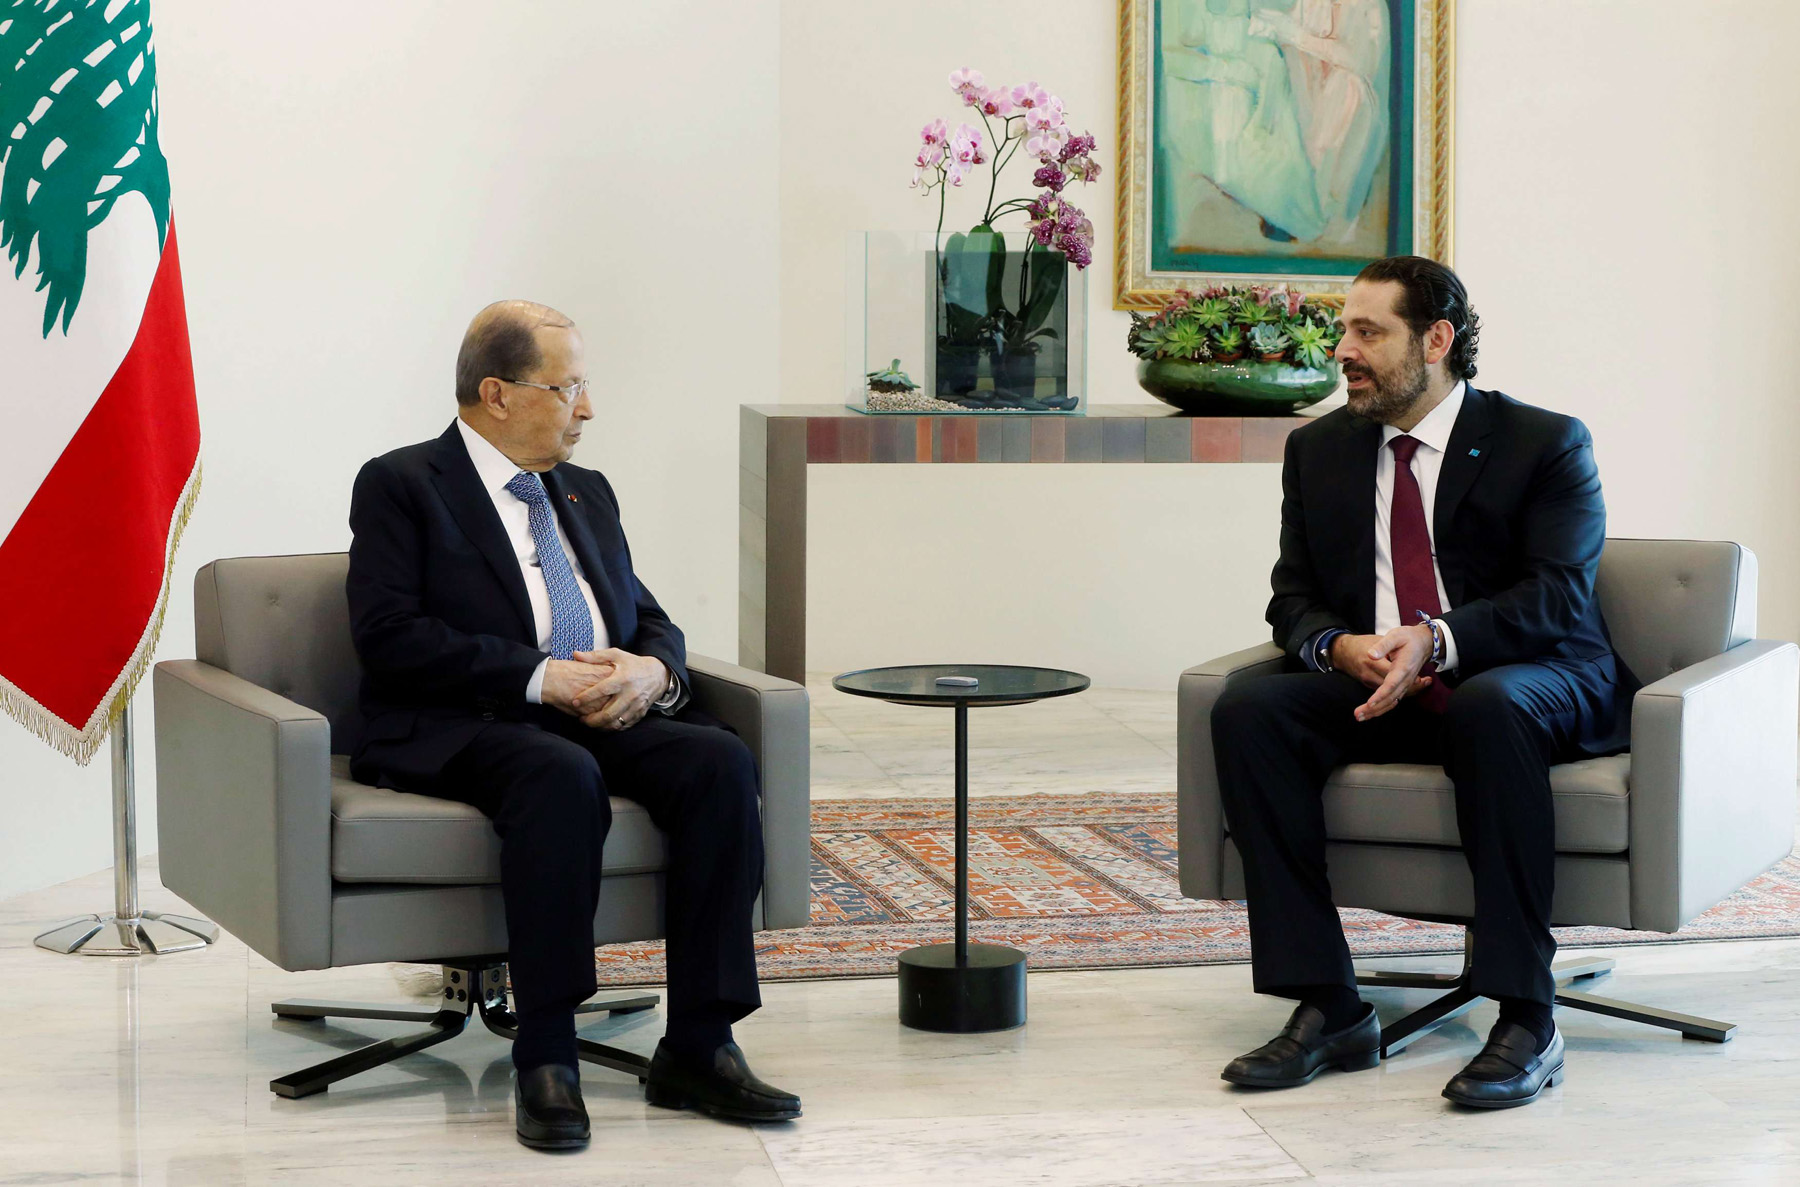 Lebanon's President Michel Aoun (L) meets with Lebanese Prime Minister-designate Saad Hariri at the presidential palace in Baabda, on June 22. (Reuters)